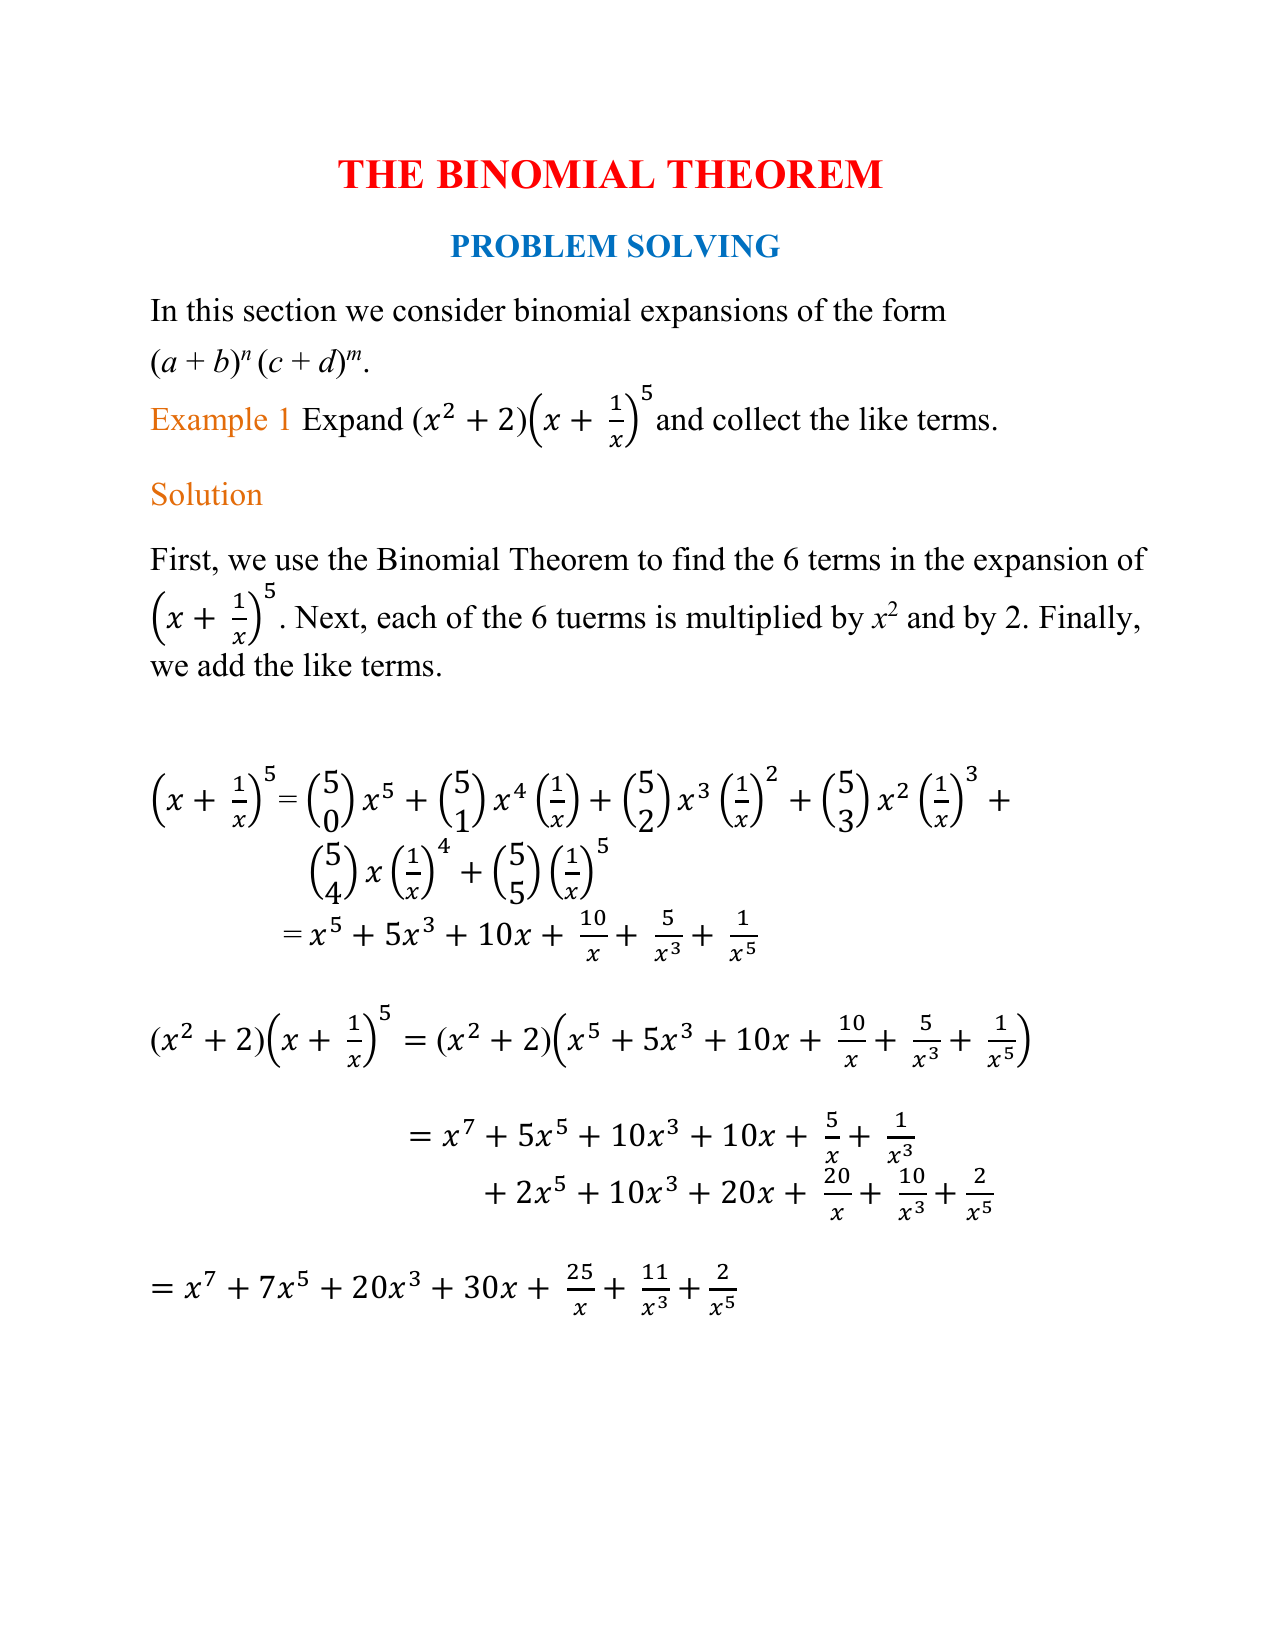 Worksheet Binomial Theorem Worksheet mdm4u the binomial theorem problem solving